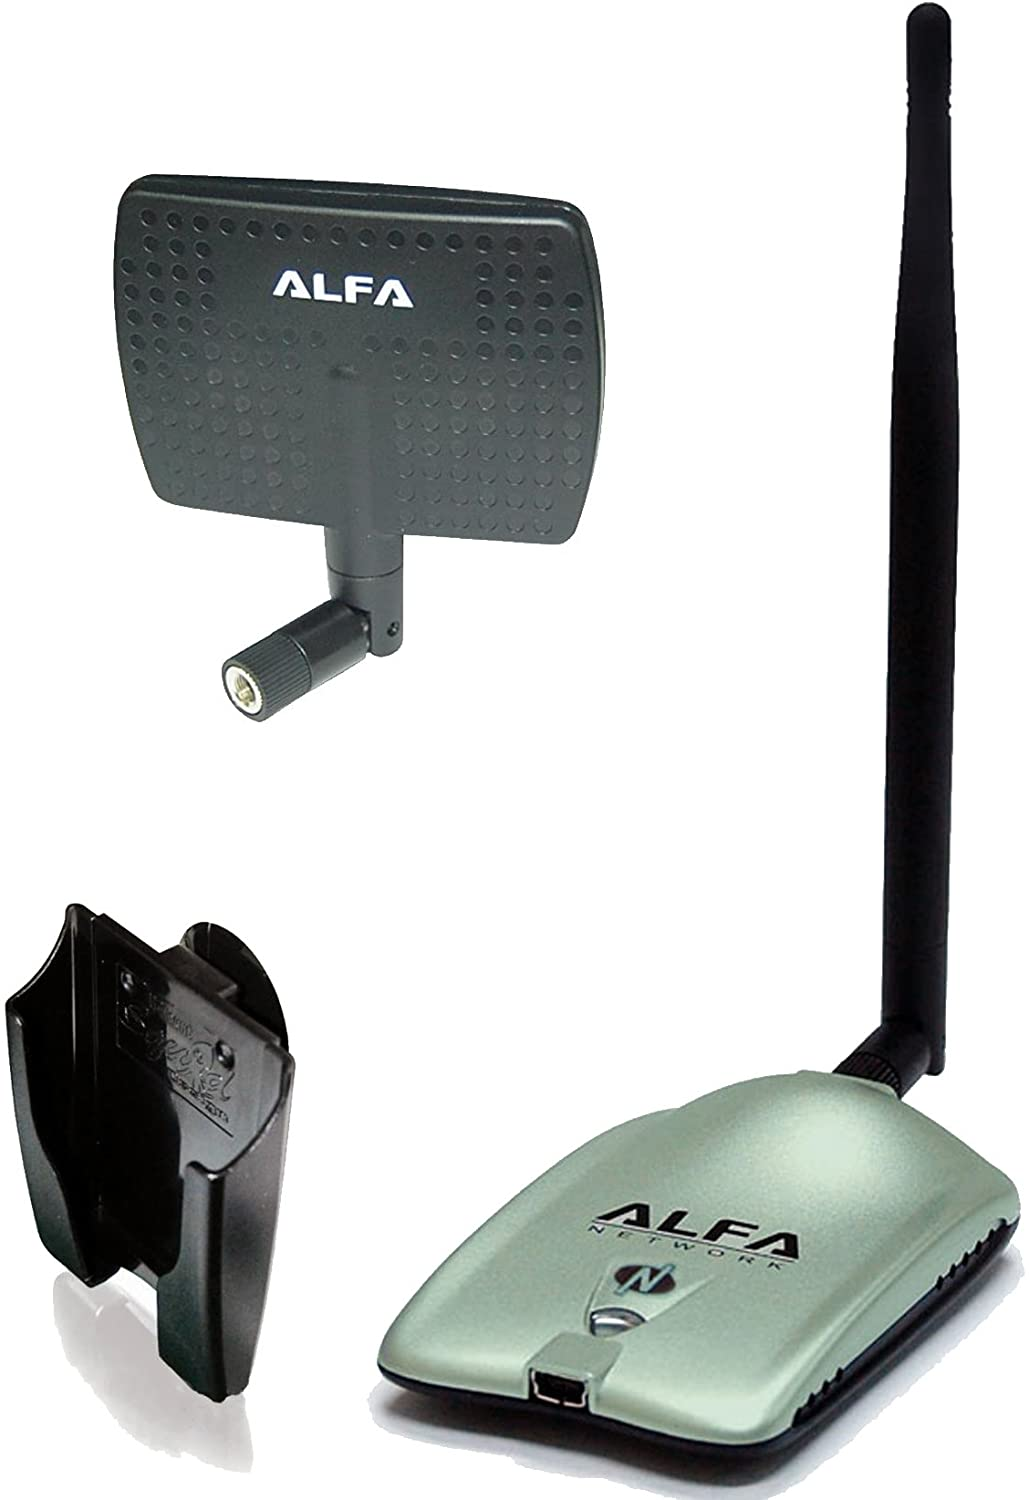 Alfa 2000mw 2w 802.11 G / N Wireless Long-range Wifi Network Adapter